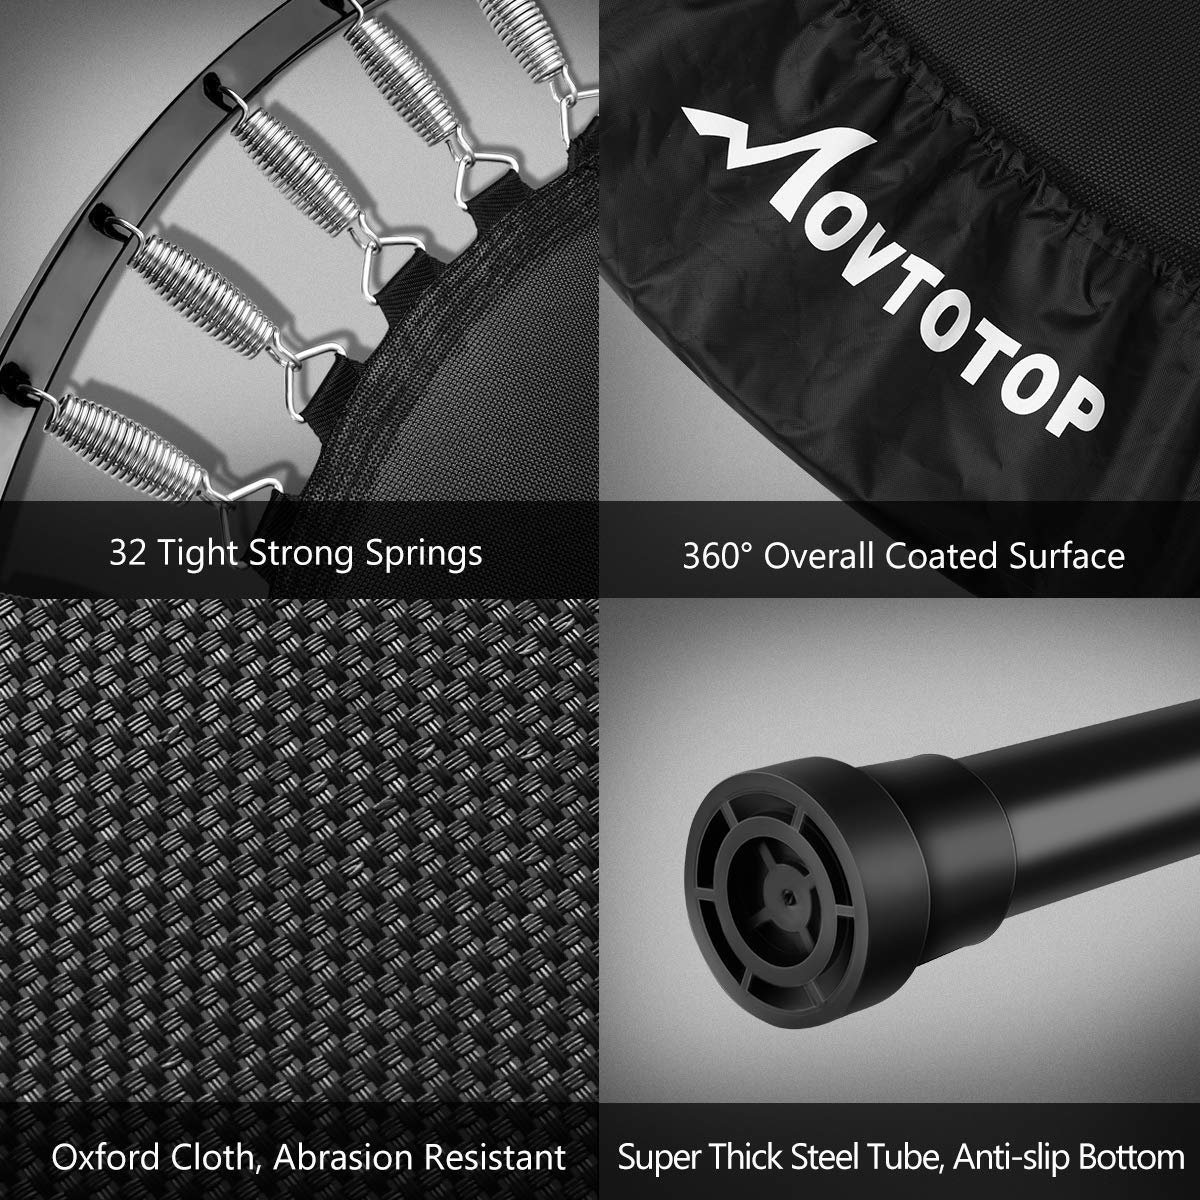 MOVTOTOP 48 40 Inch Indoor Trampoline, Folding Mini Trampoline with Adjustable Handrail and Safety Pad, Exercise Rebounder for Kids Adults-Black (40 Inch-Foldable) by MOVTOTOP (Image #3)